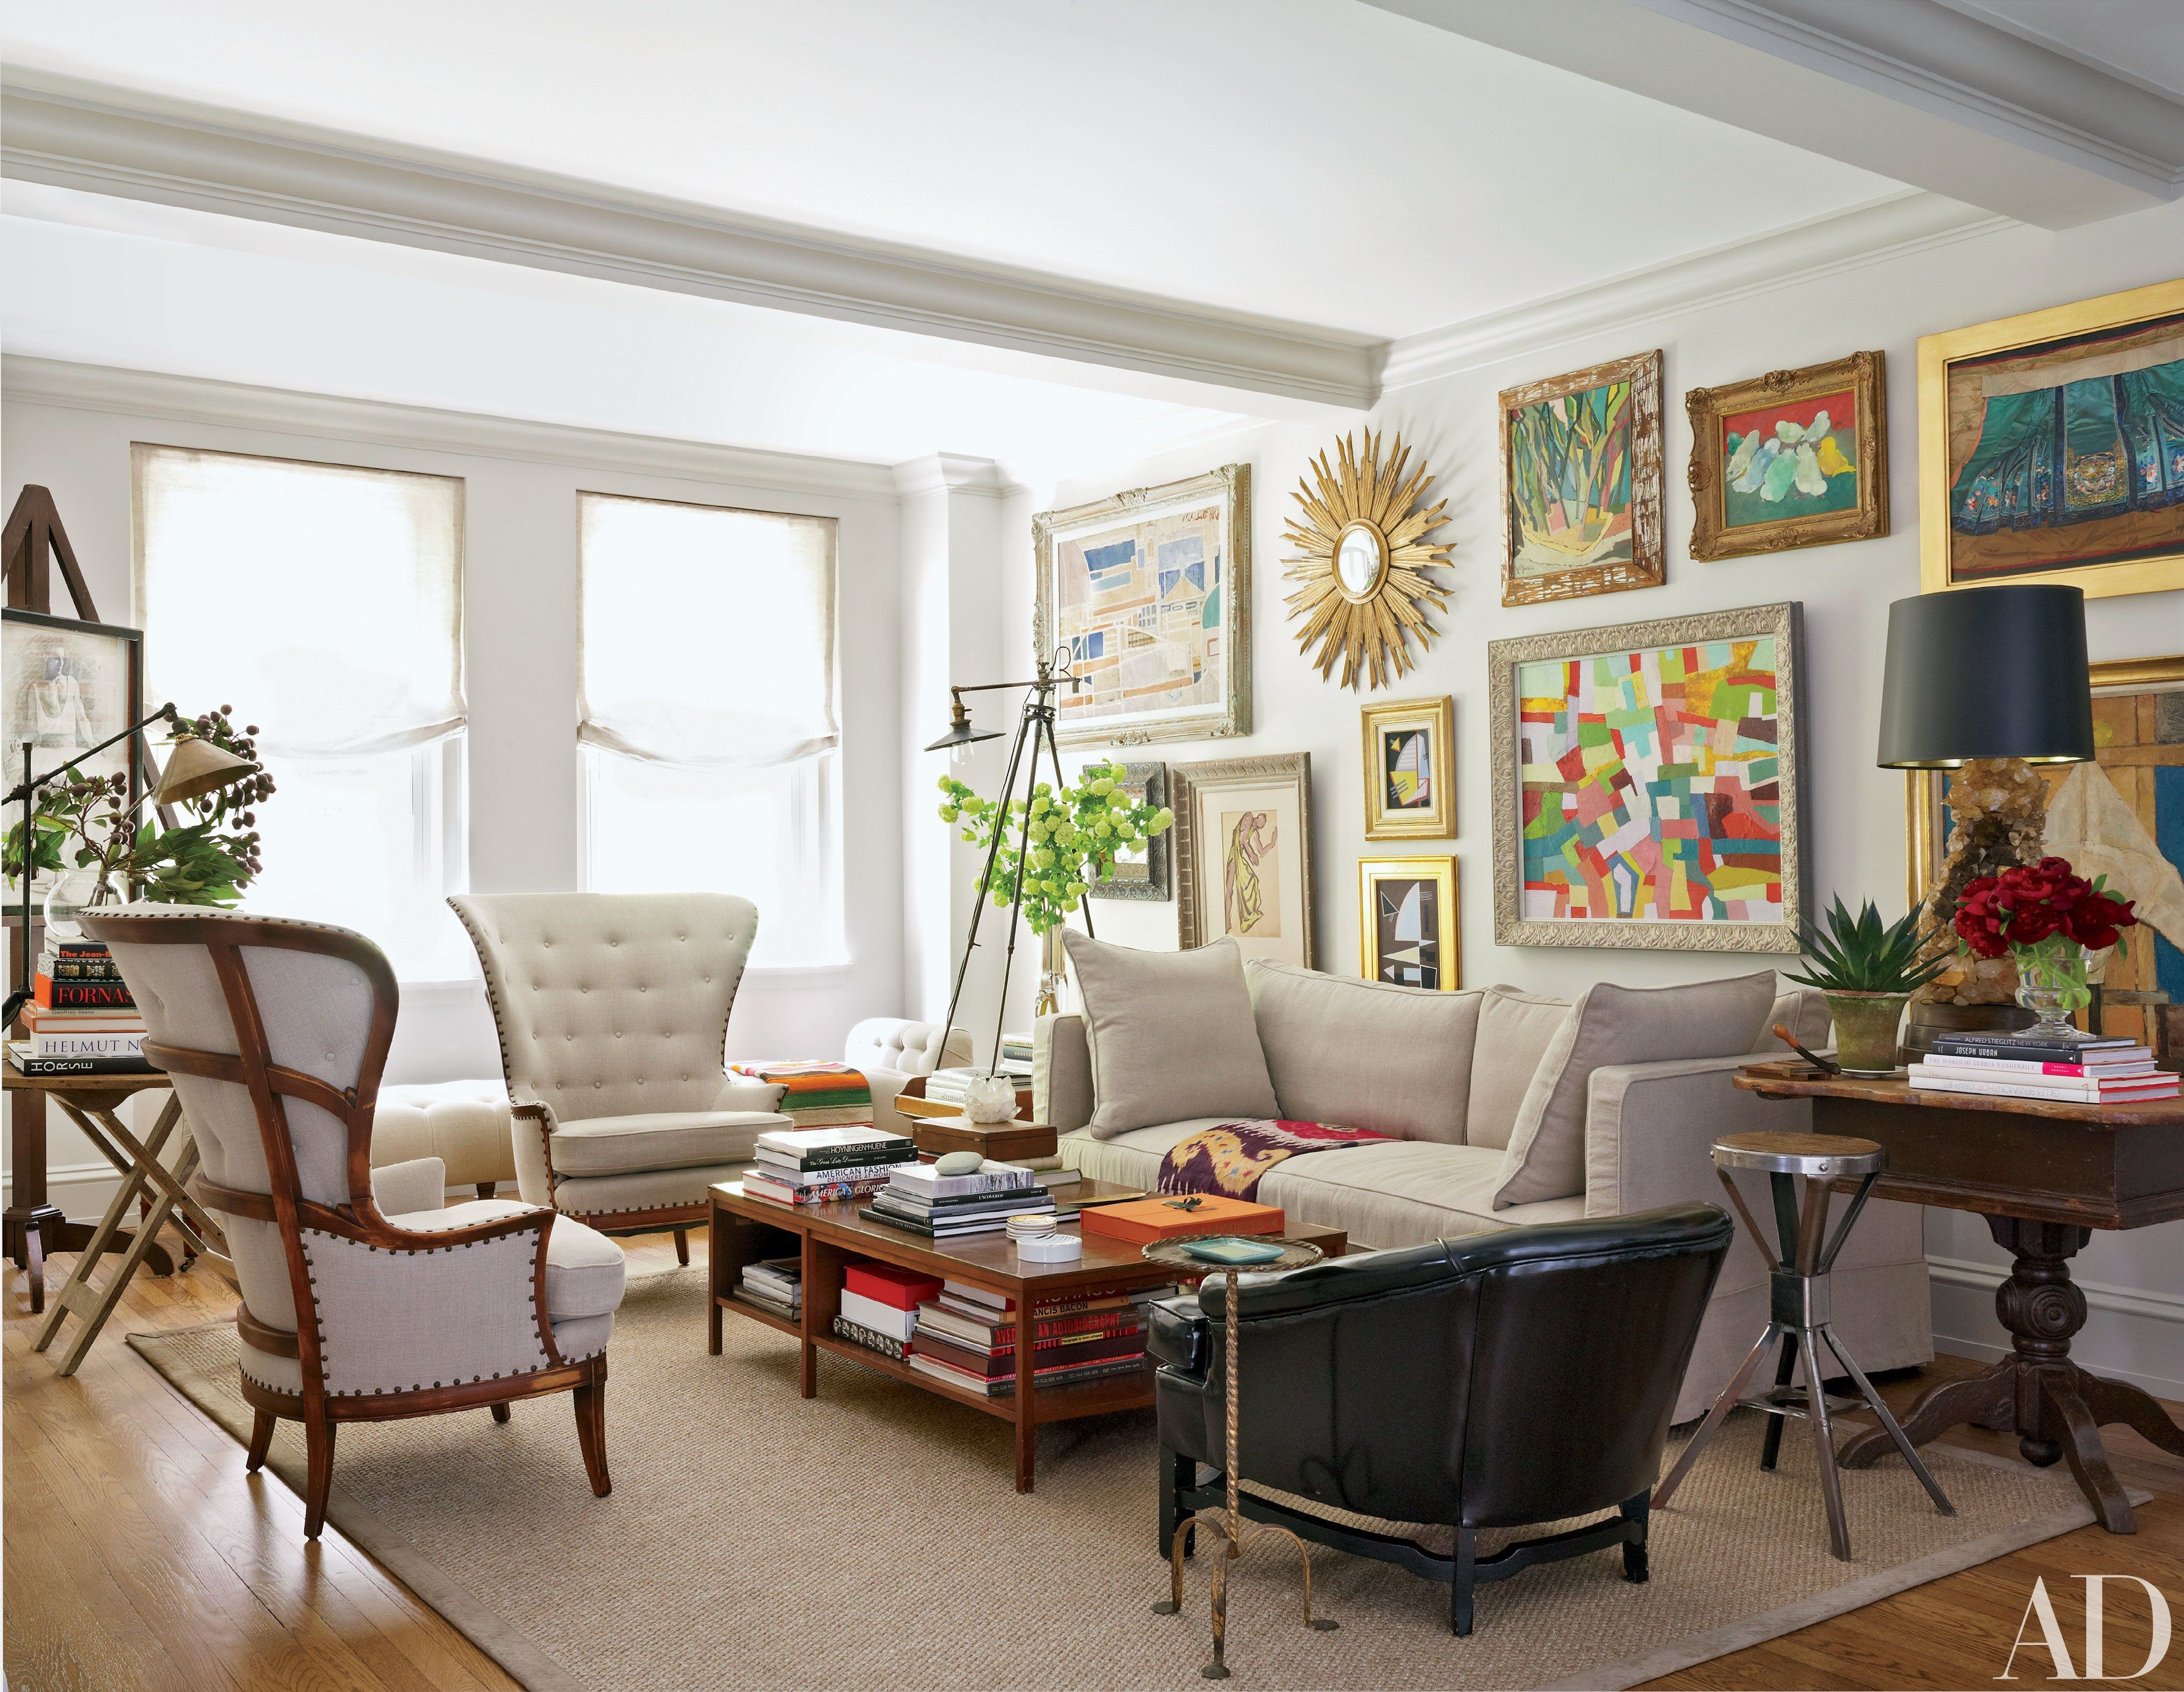 Artworks Get Maximum Impact with Salon-Style Walls | Gallery wall ...